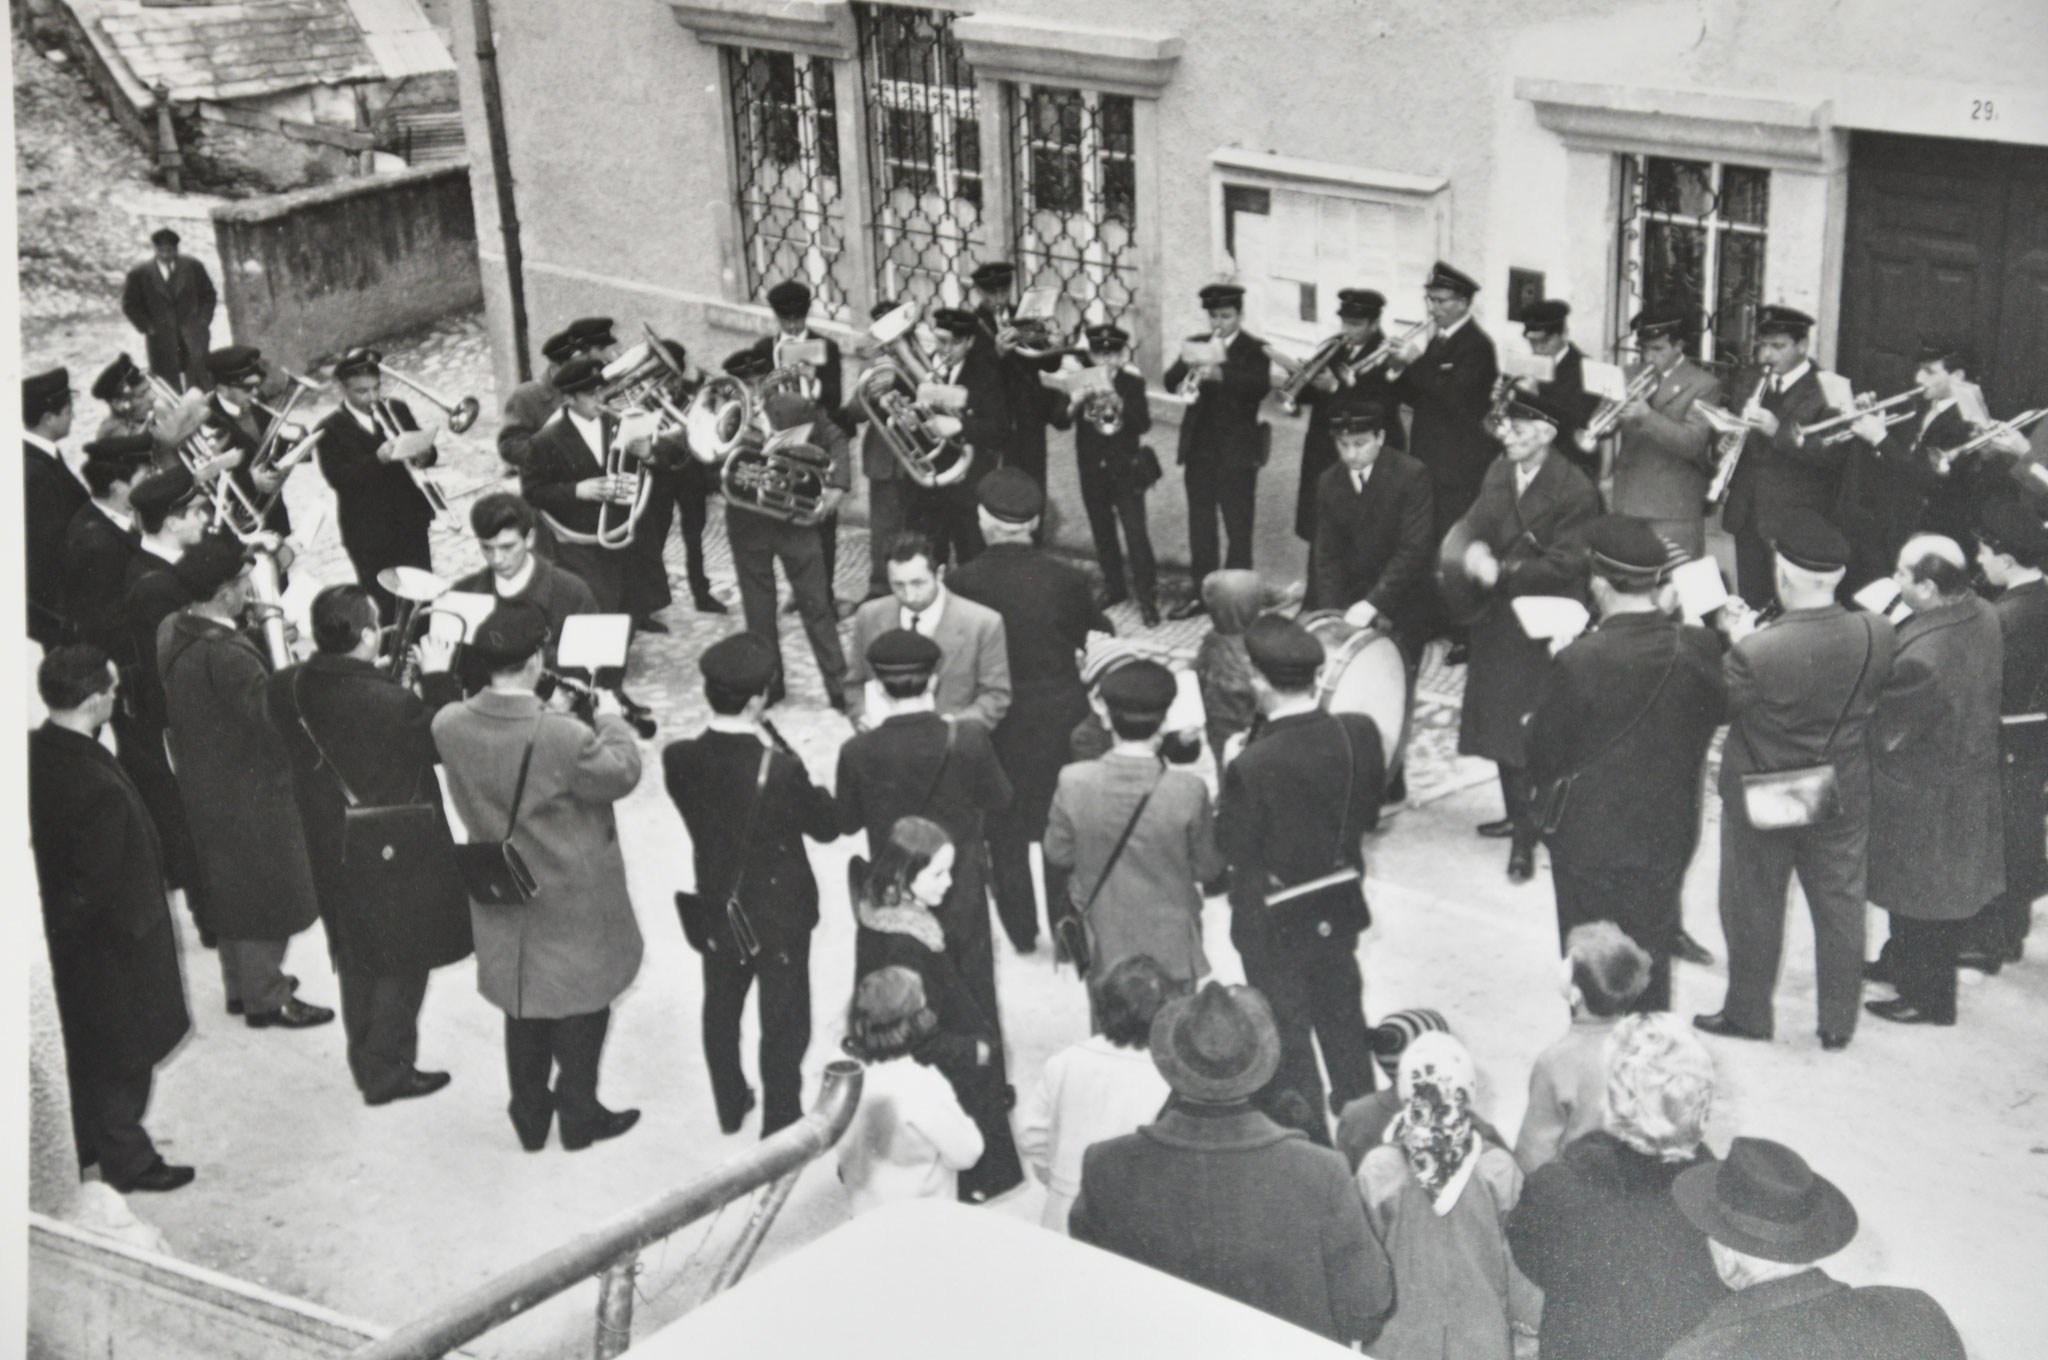 1963 In paese